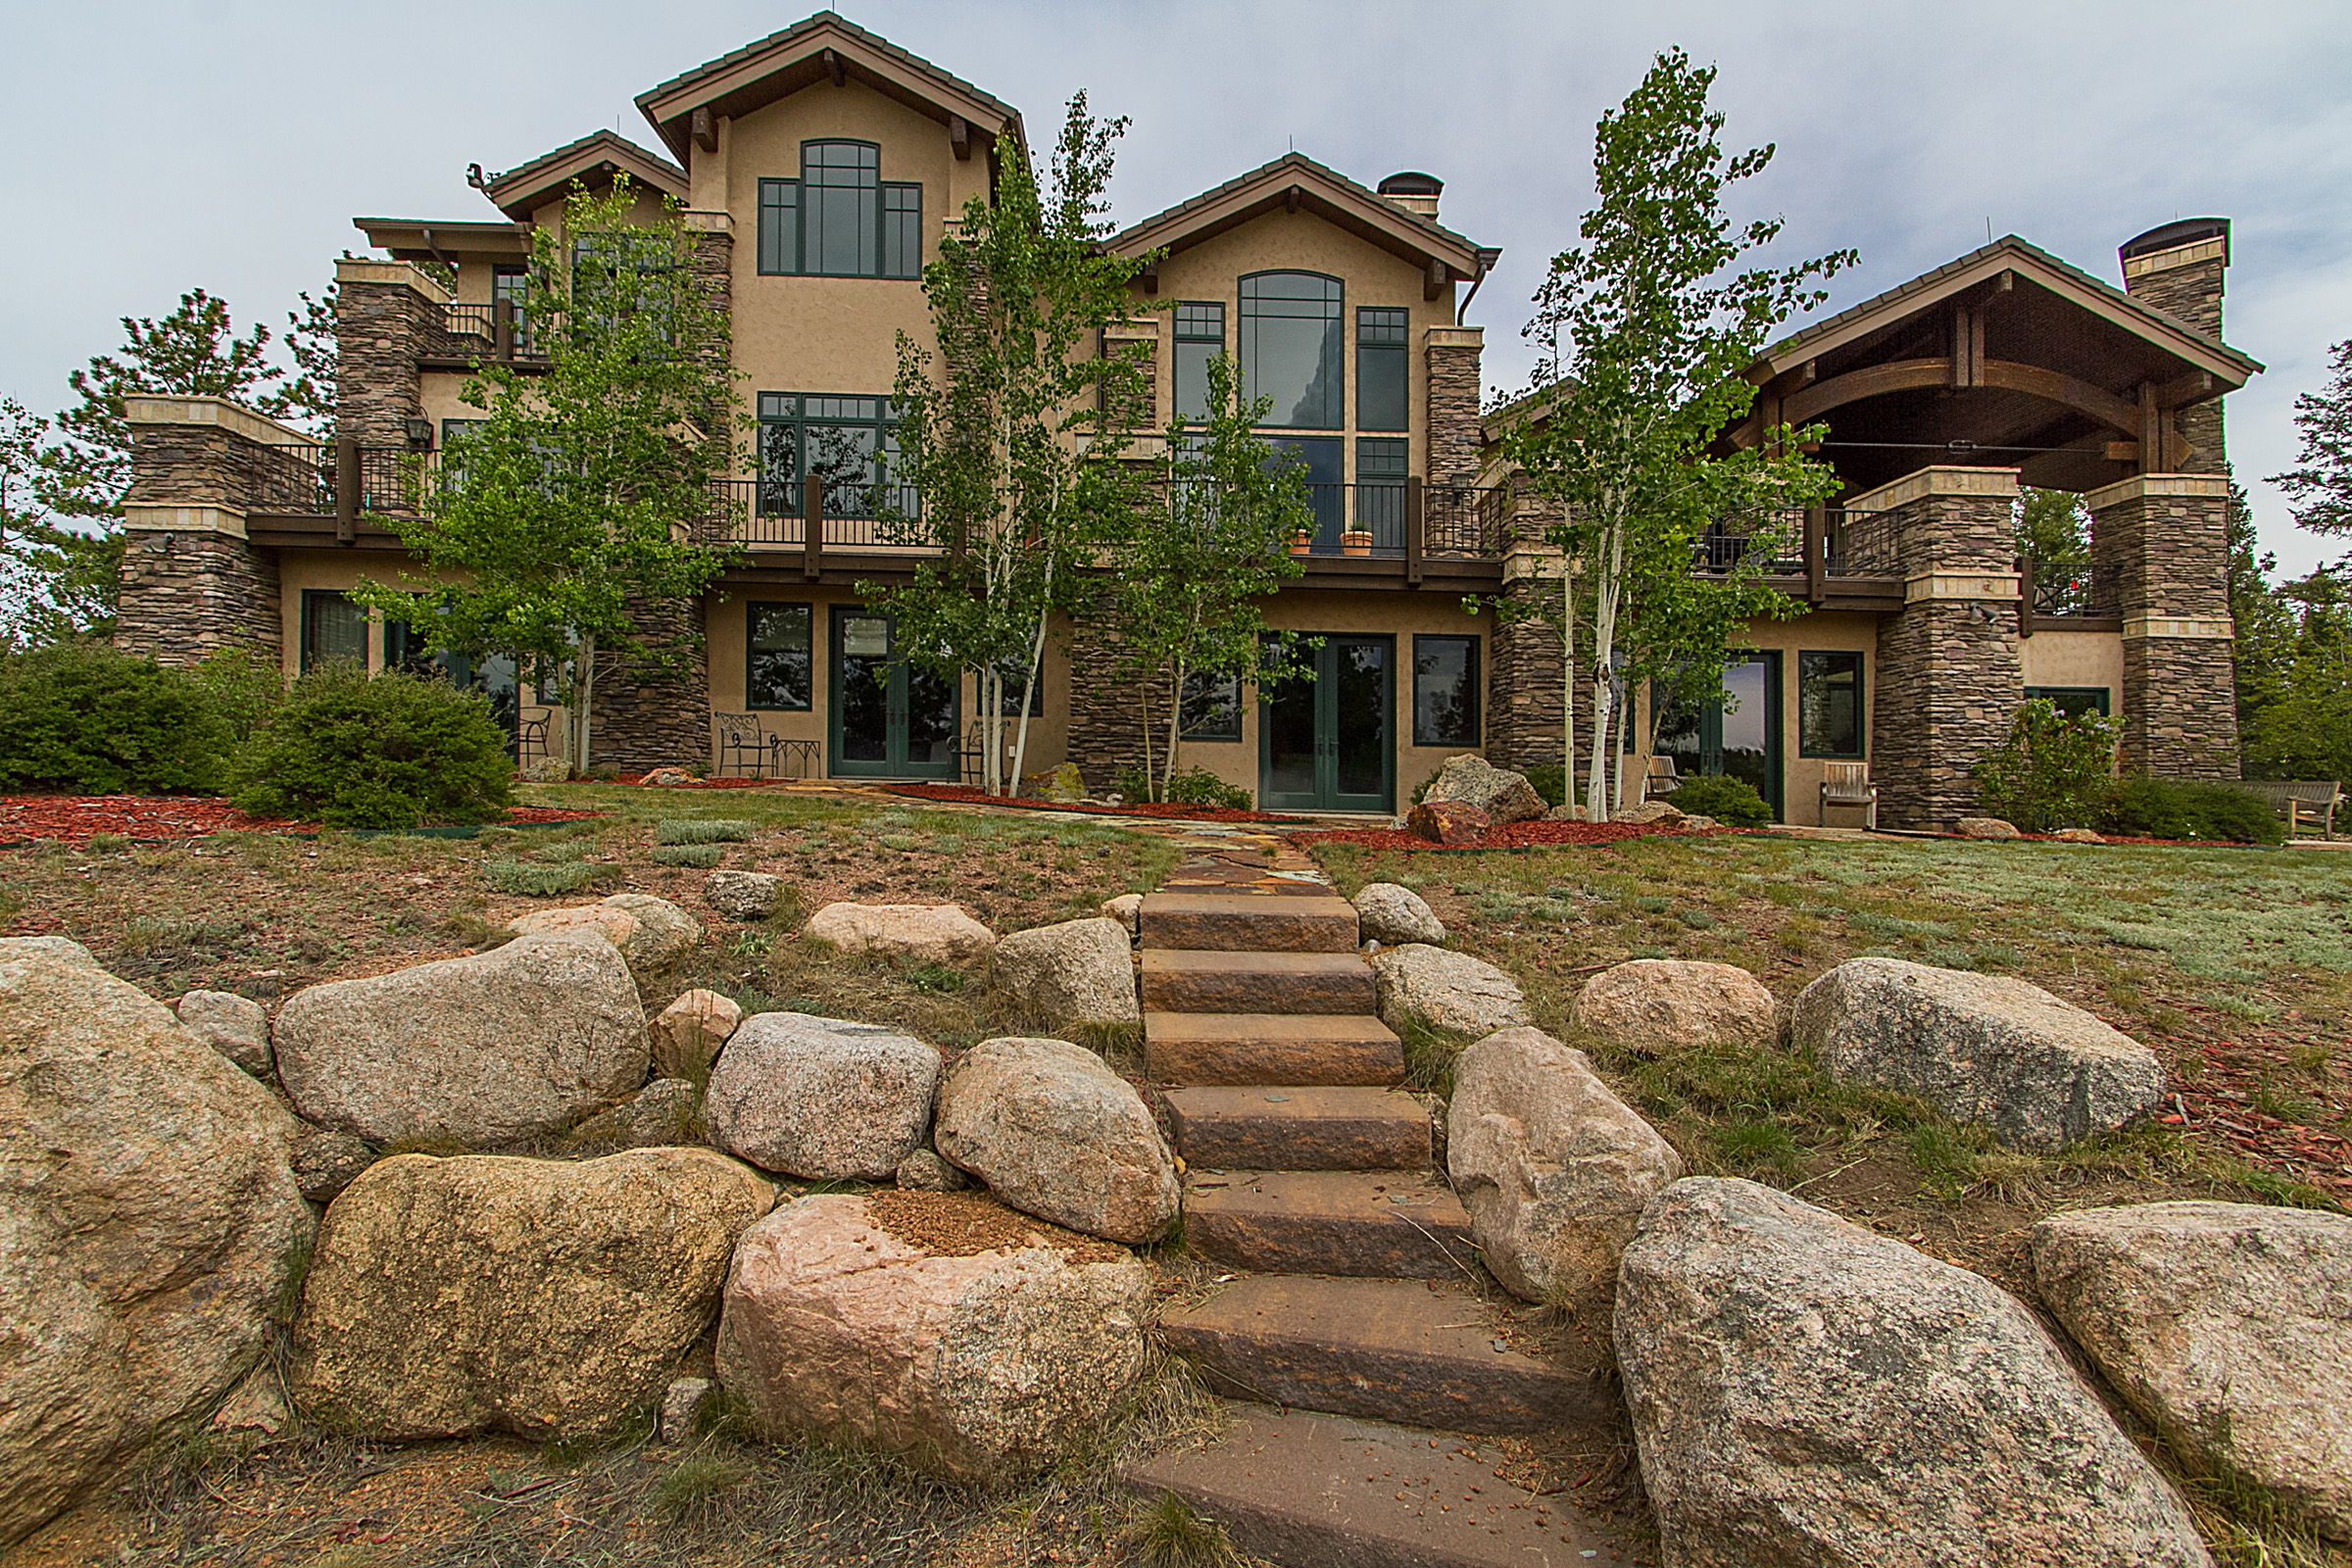 Single Family Home for Active at Divide Home Features Unforgettable Views of Pikes Peak 4145 Omer Road Divide, Colorado 80814 United States